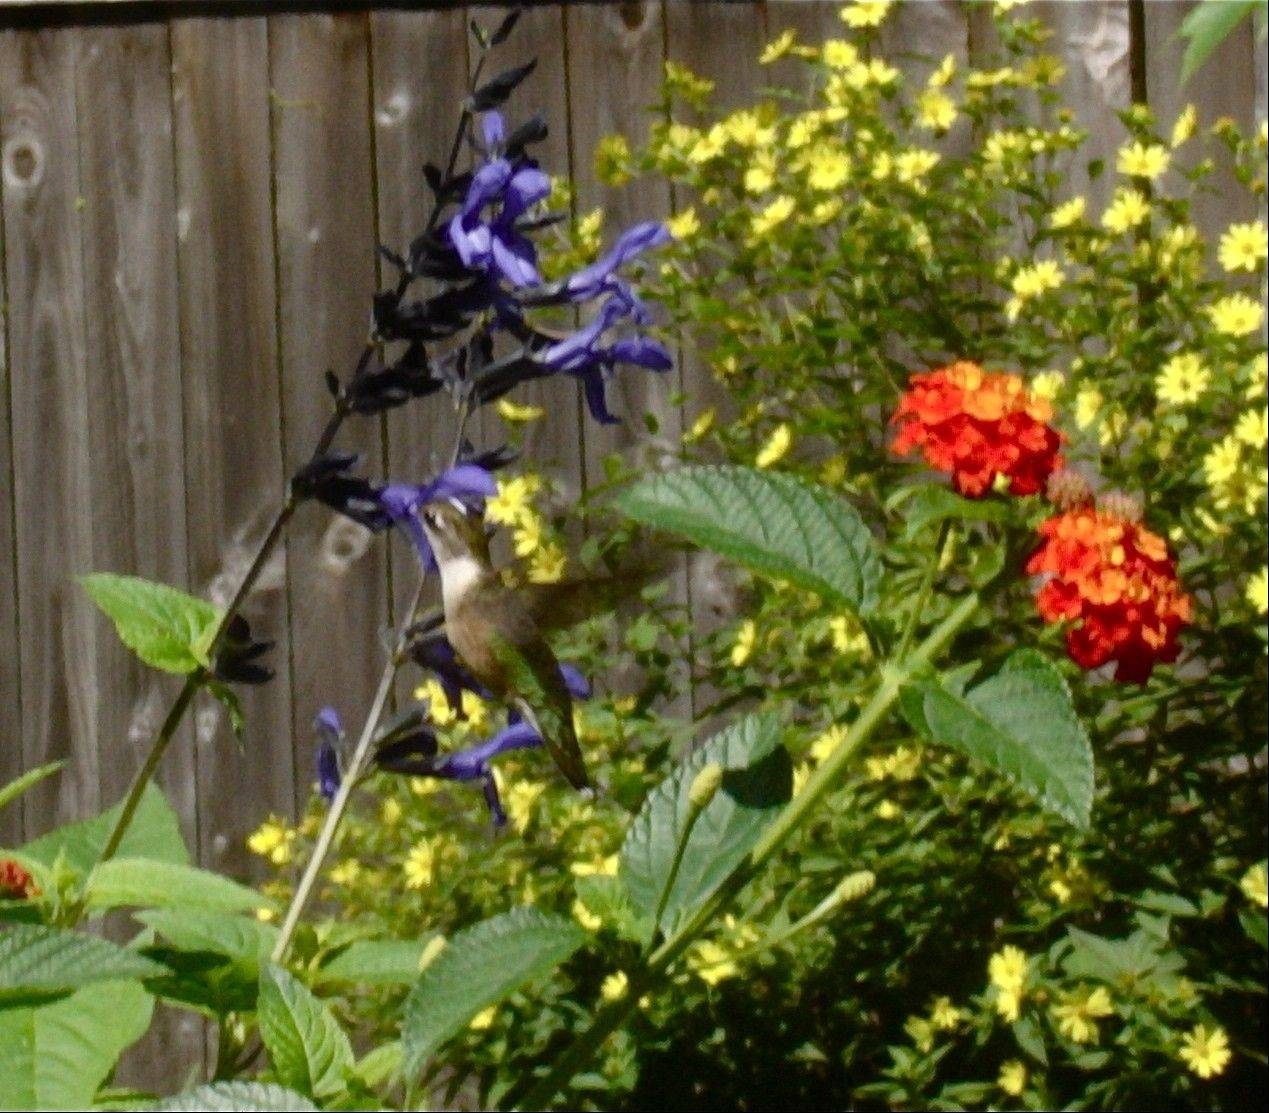 Provide flowers or feeders, a place to rest and water and you may attract hummingbirds to your garden.